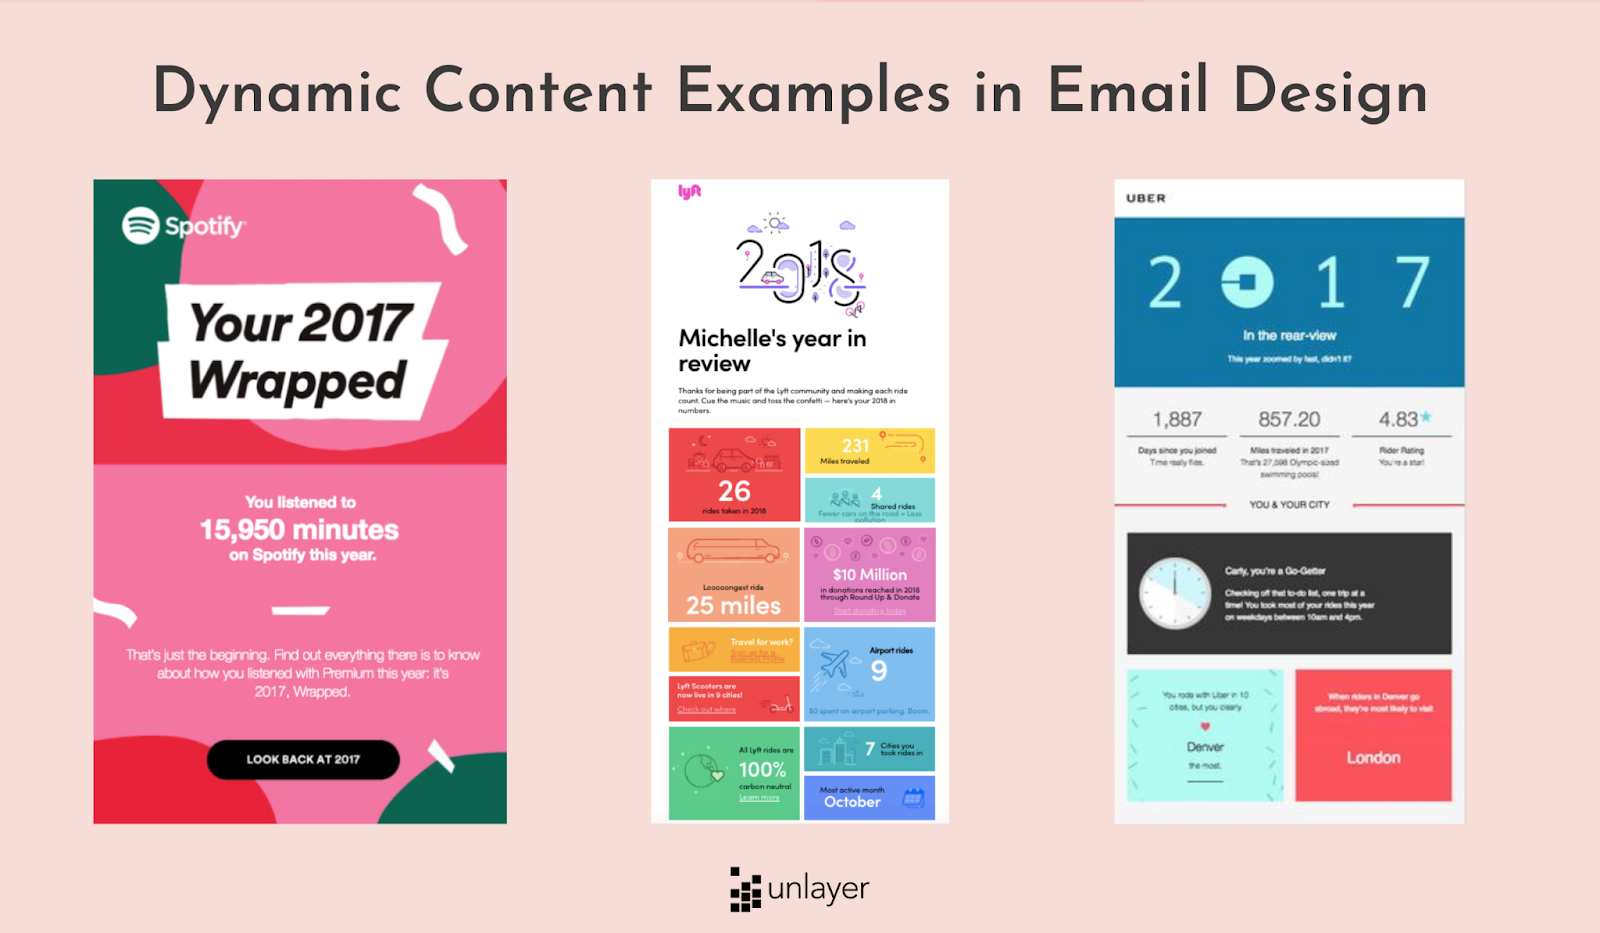 Dynamic content example in email design